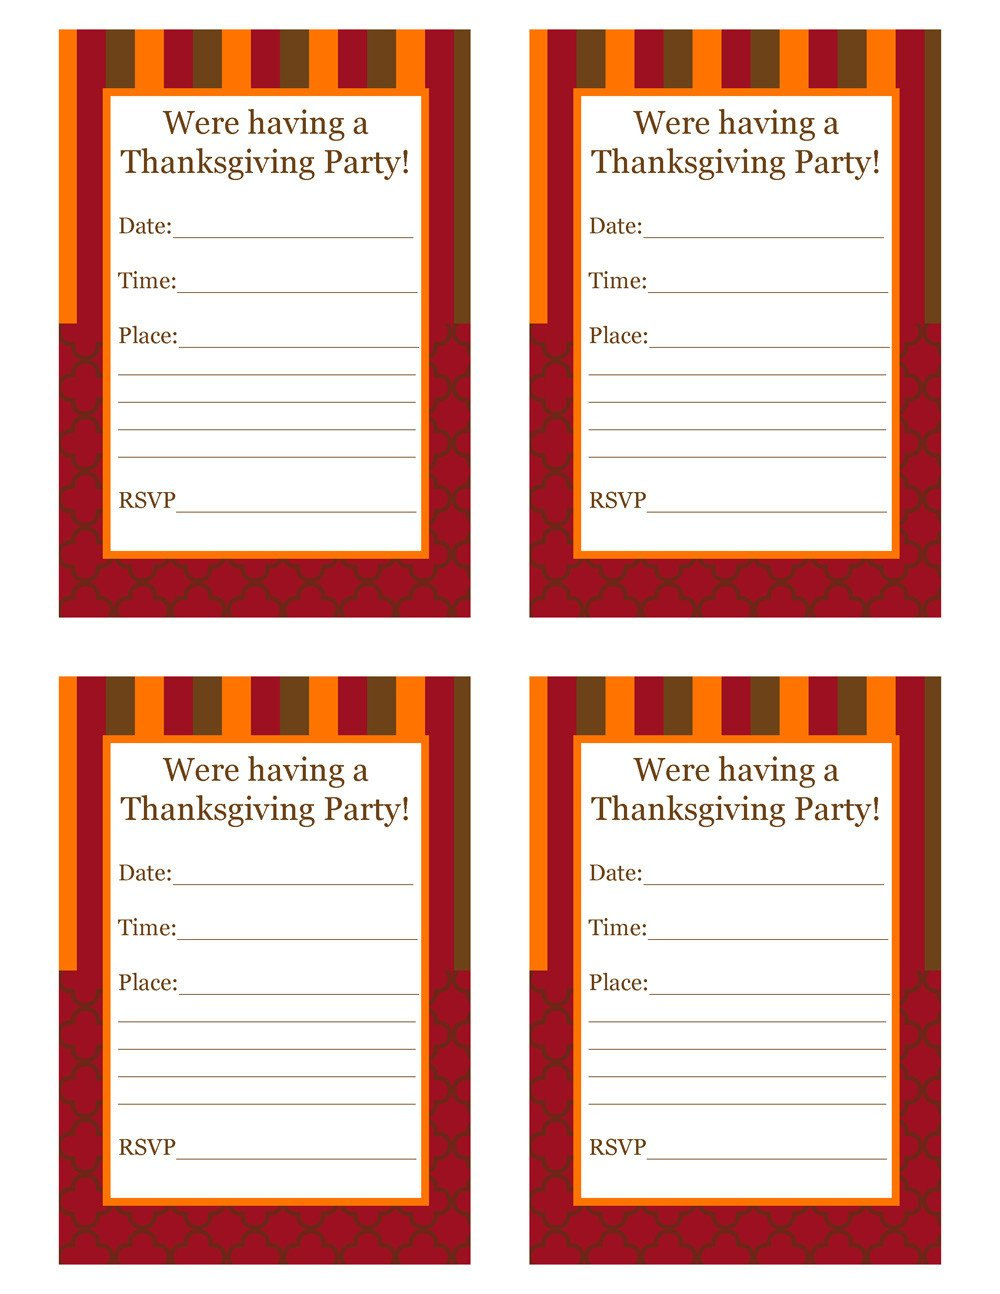 Free Thanksgiving Invitation Templates Free Thanksgiving Party Printables From Cupcake Express